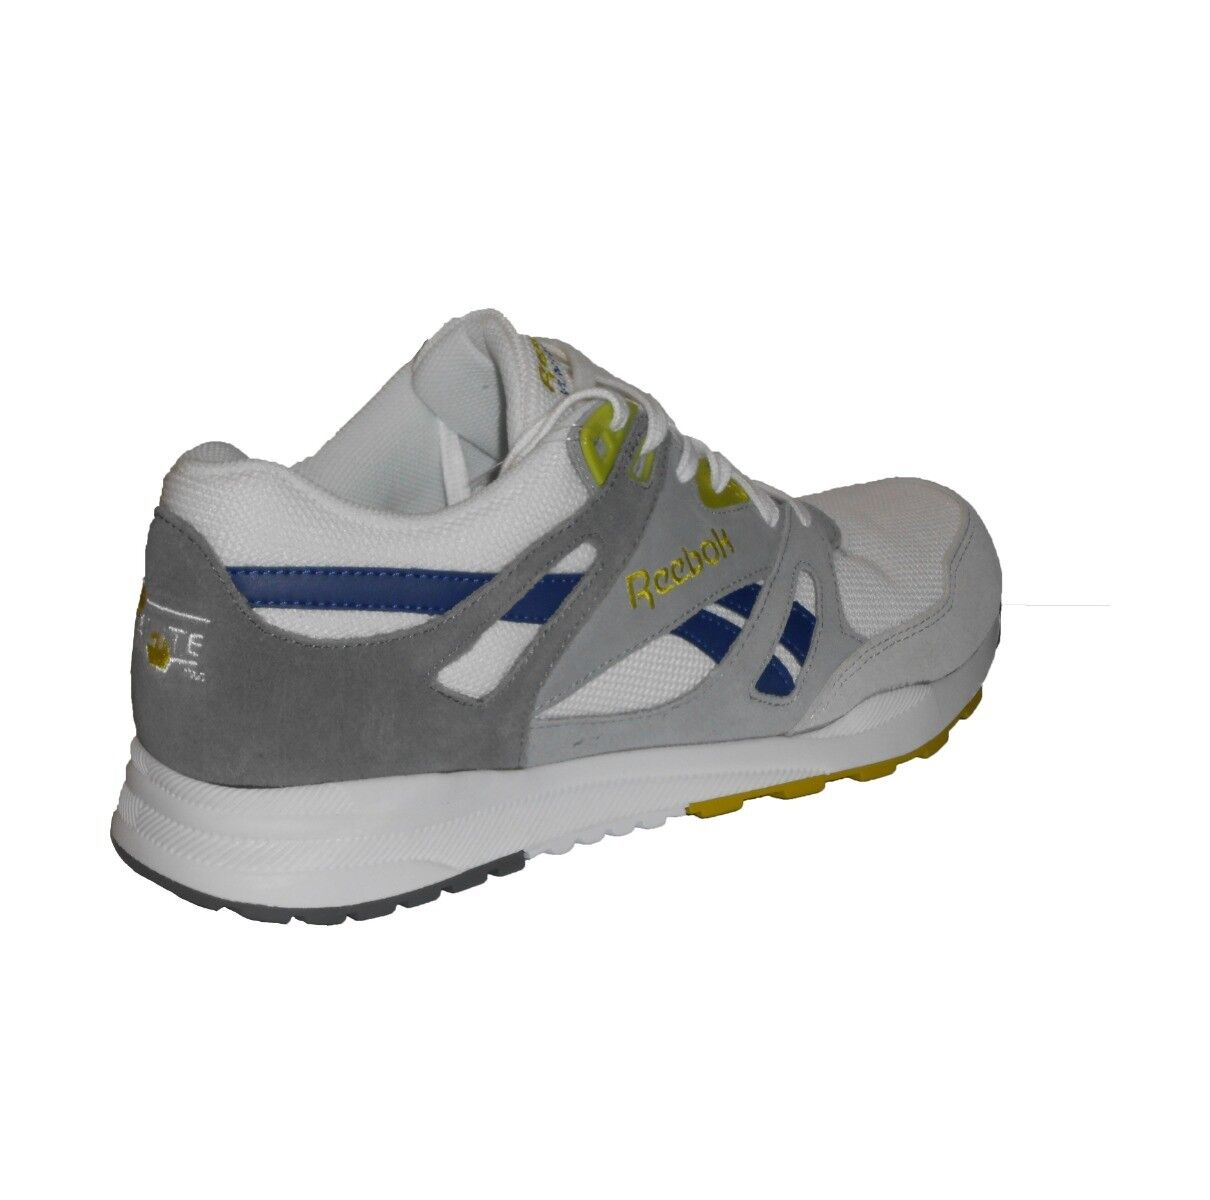 Reebok Vantilator Athletic UK 9.5 EU 44 Running  Schuhe Trainer  Running /- 55e4db